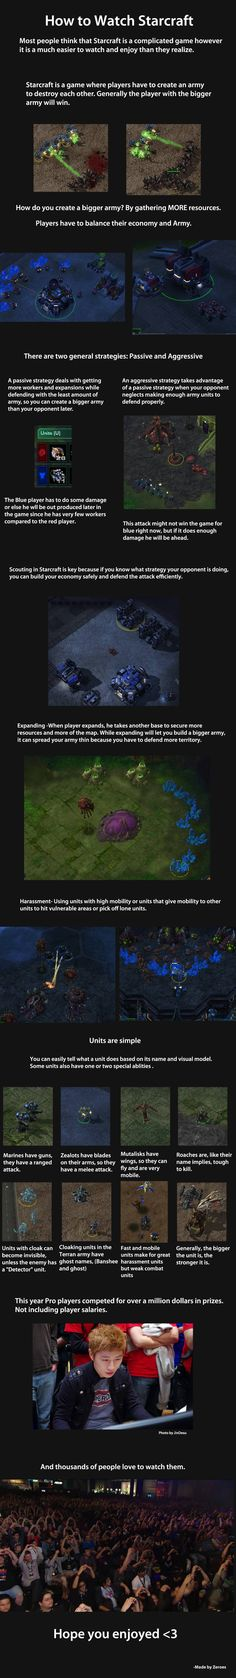 A good explanation of the basics to a viewer.